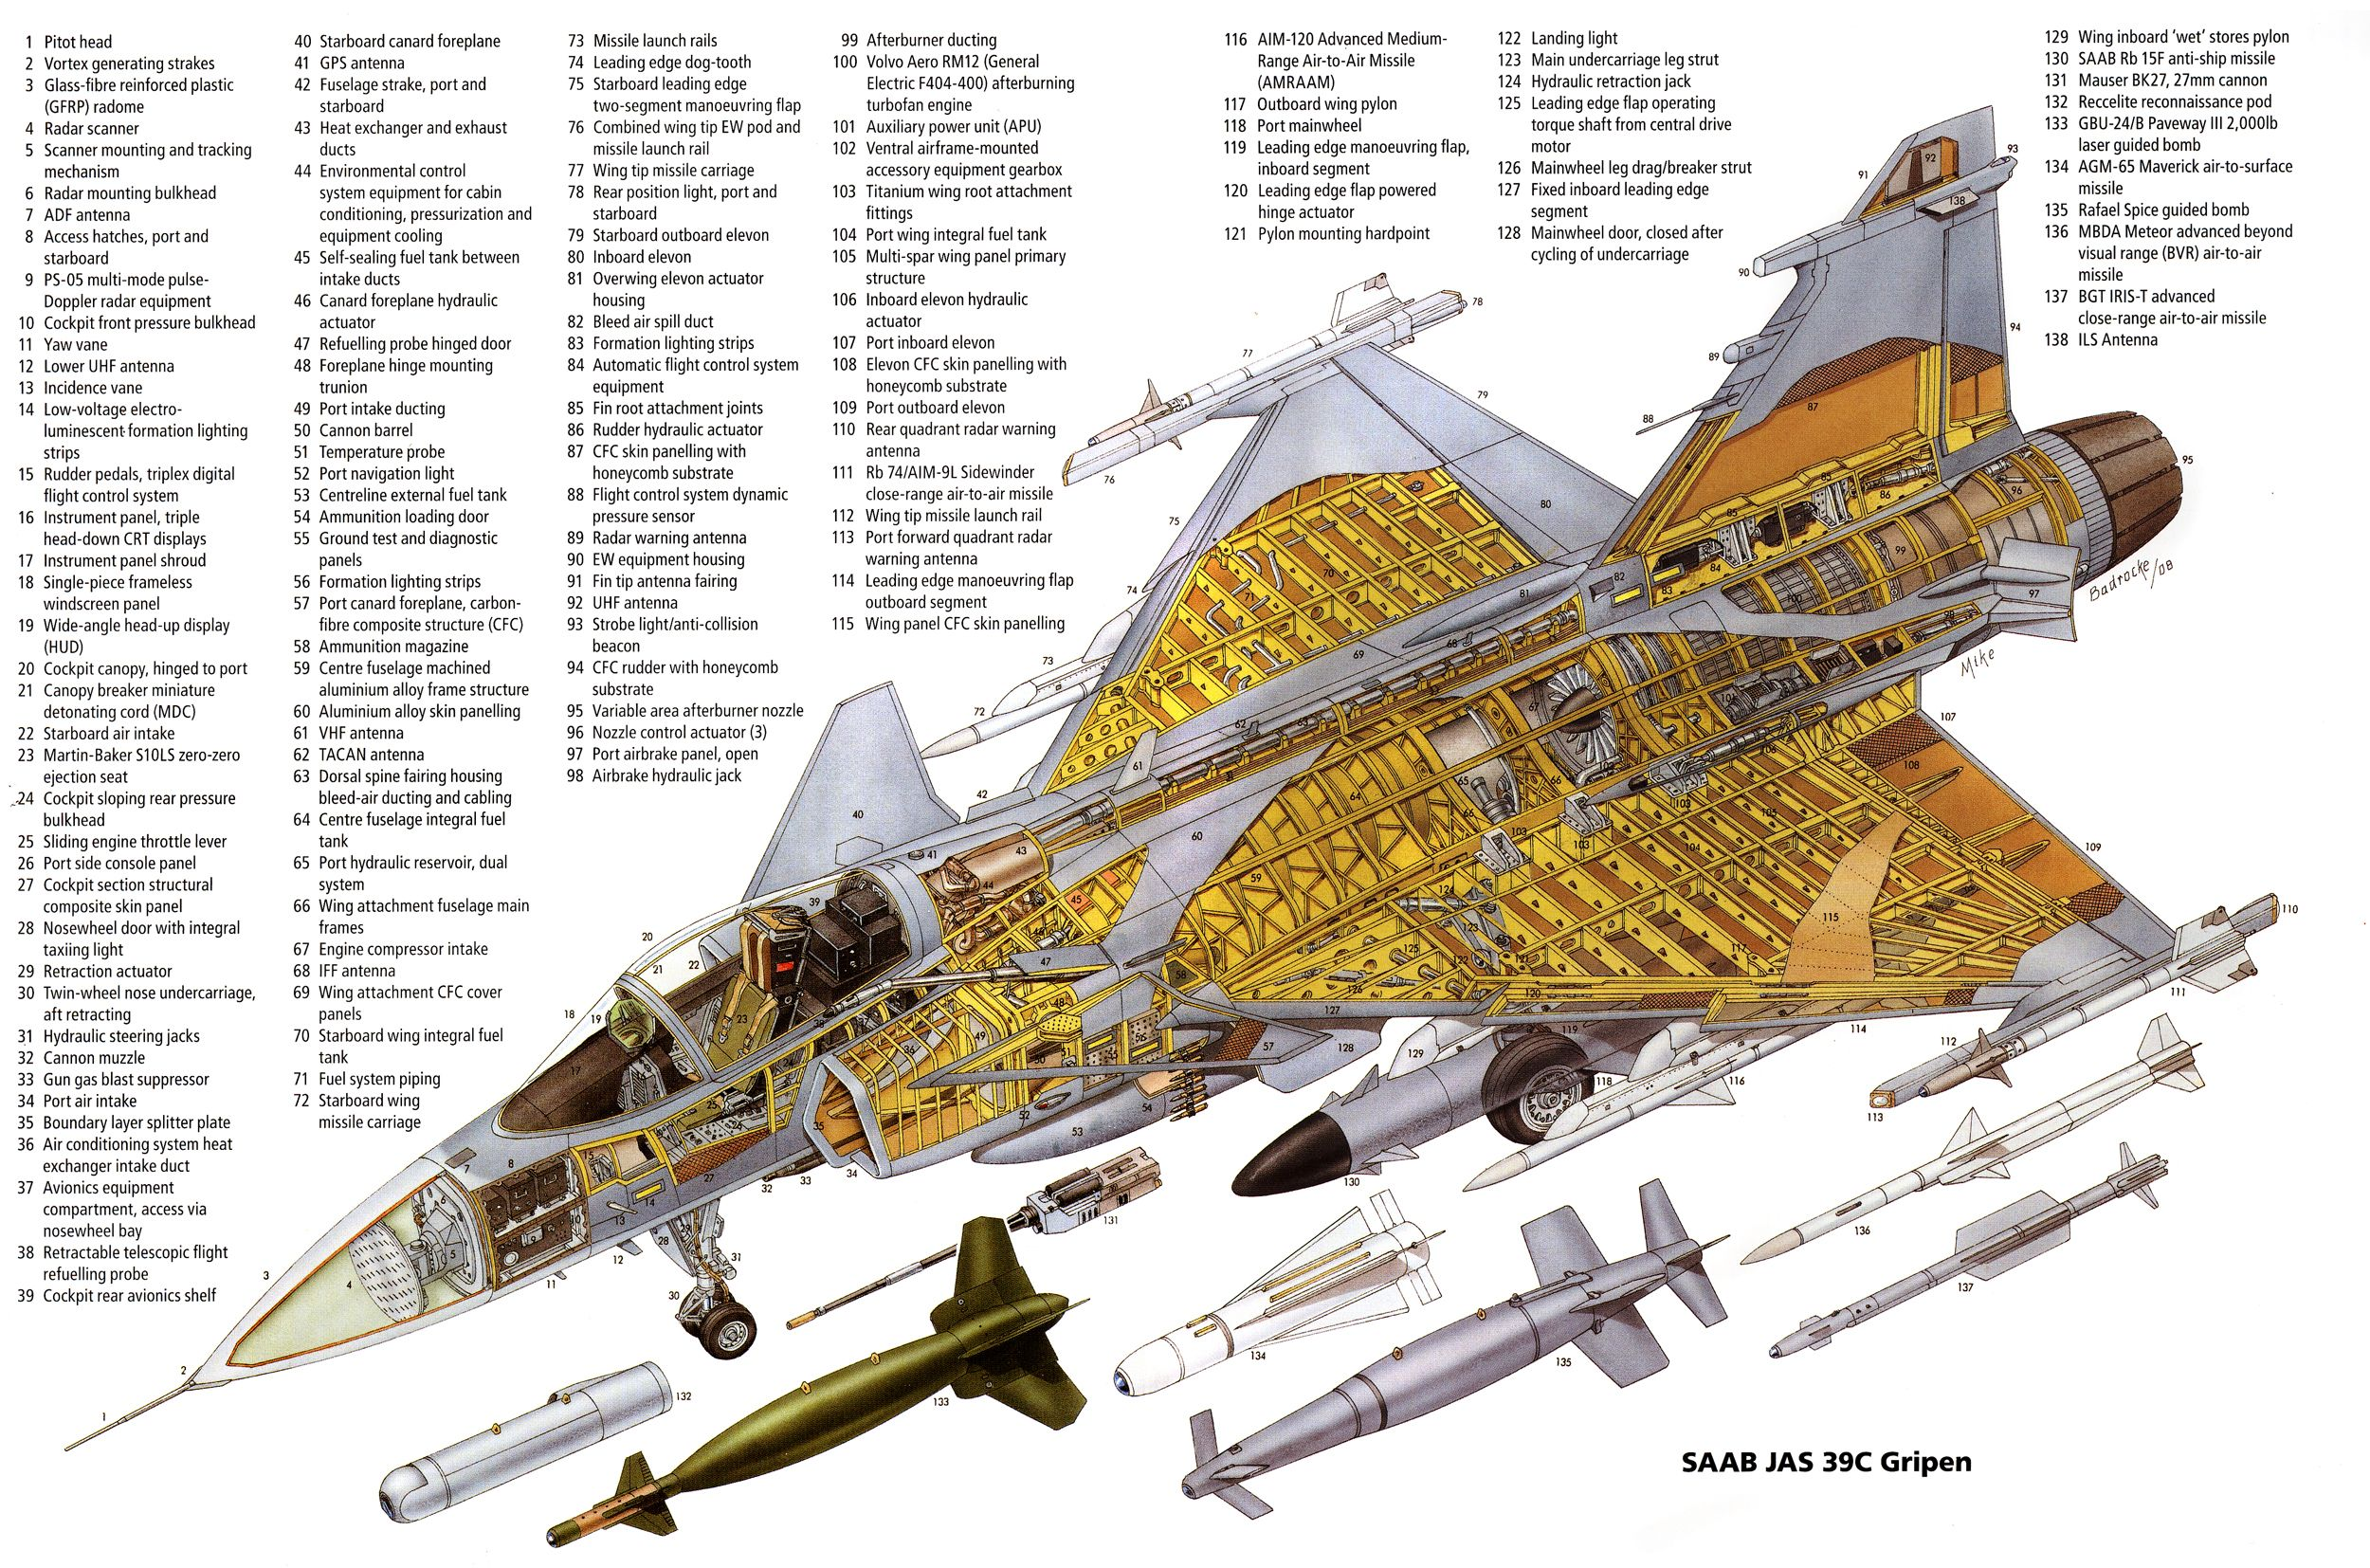 bell helicopter blueprint with Imagenes Cutaway Parte1 on Oblivion Bubbleship additionally Bell ah 1w super cobra furthermore Imagenes Cutaway PARTE1 as well 4 together with Cutaway Ah 1z Viper Enters Production As Substantially New Aircraft.